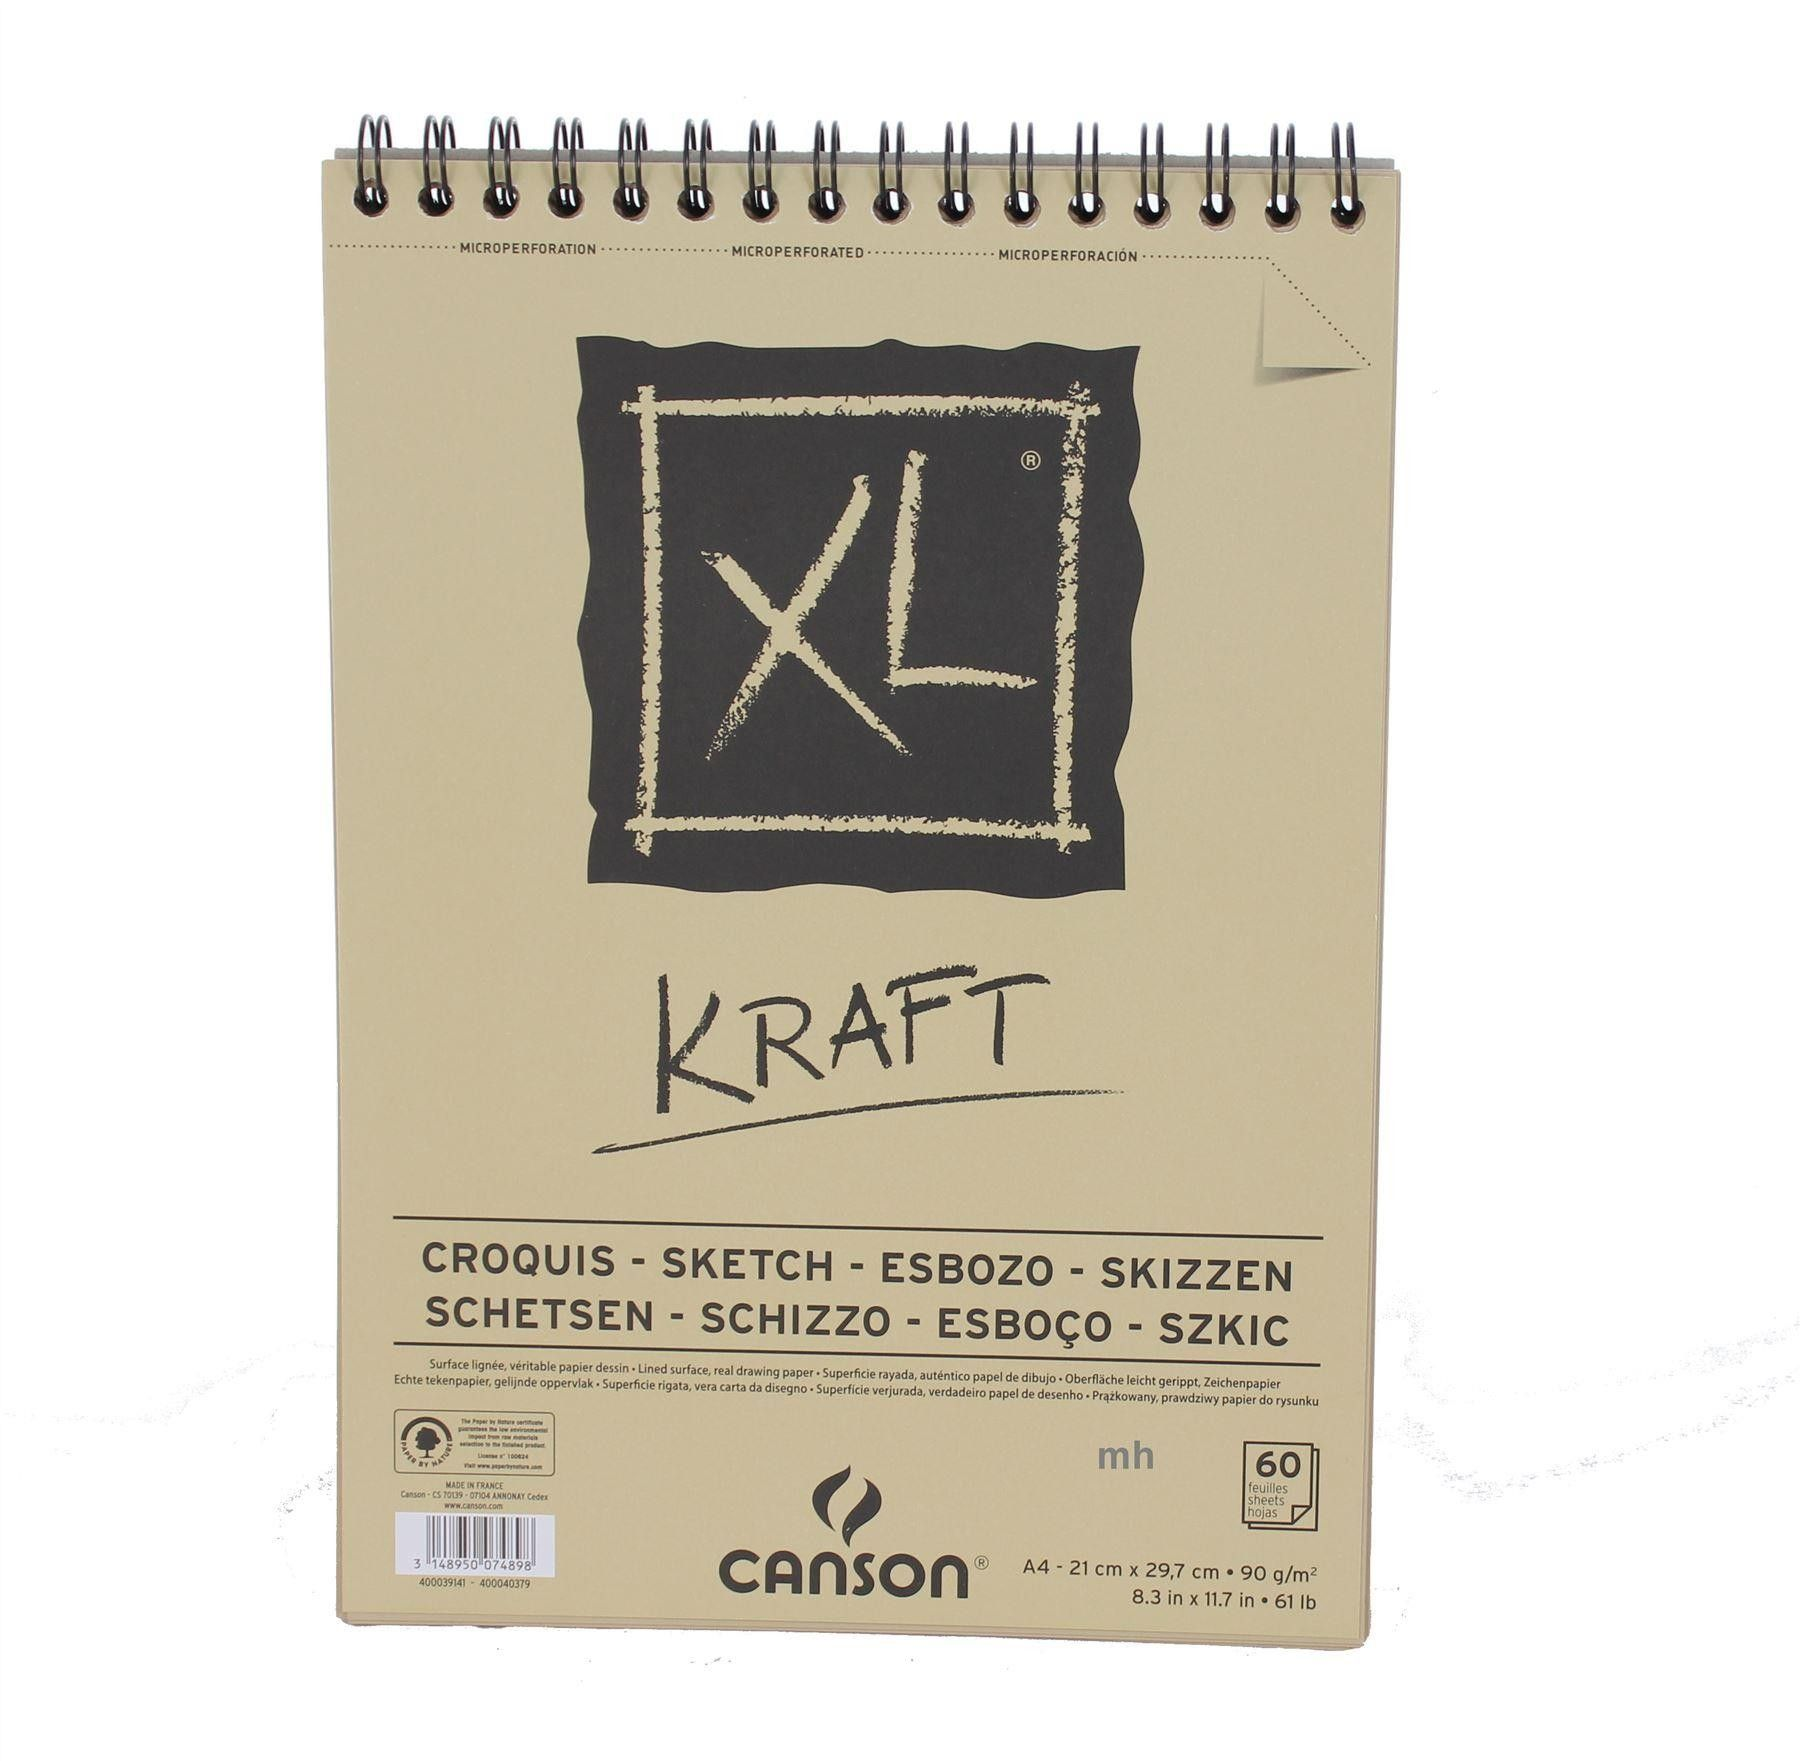 Canson Xl Kraft Pad Brown Paper A3 A4 60 Sheets 90gsm Sketch